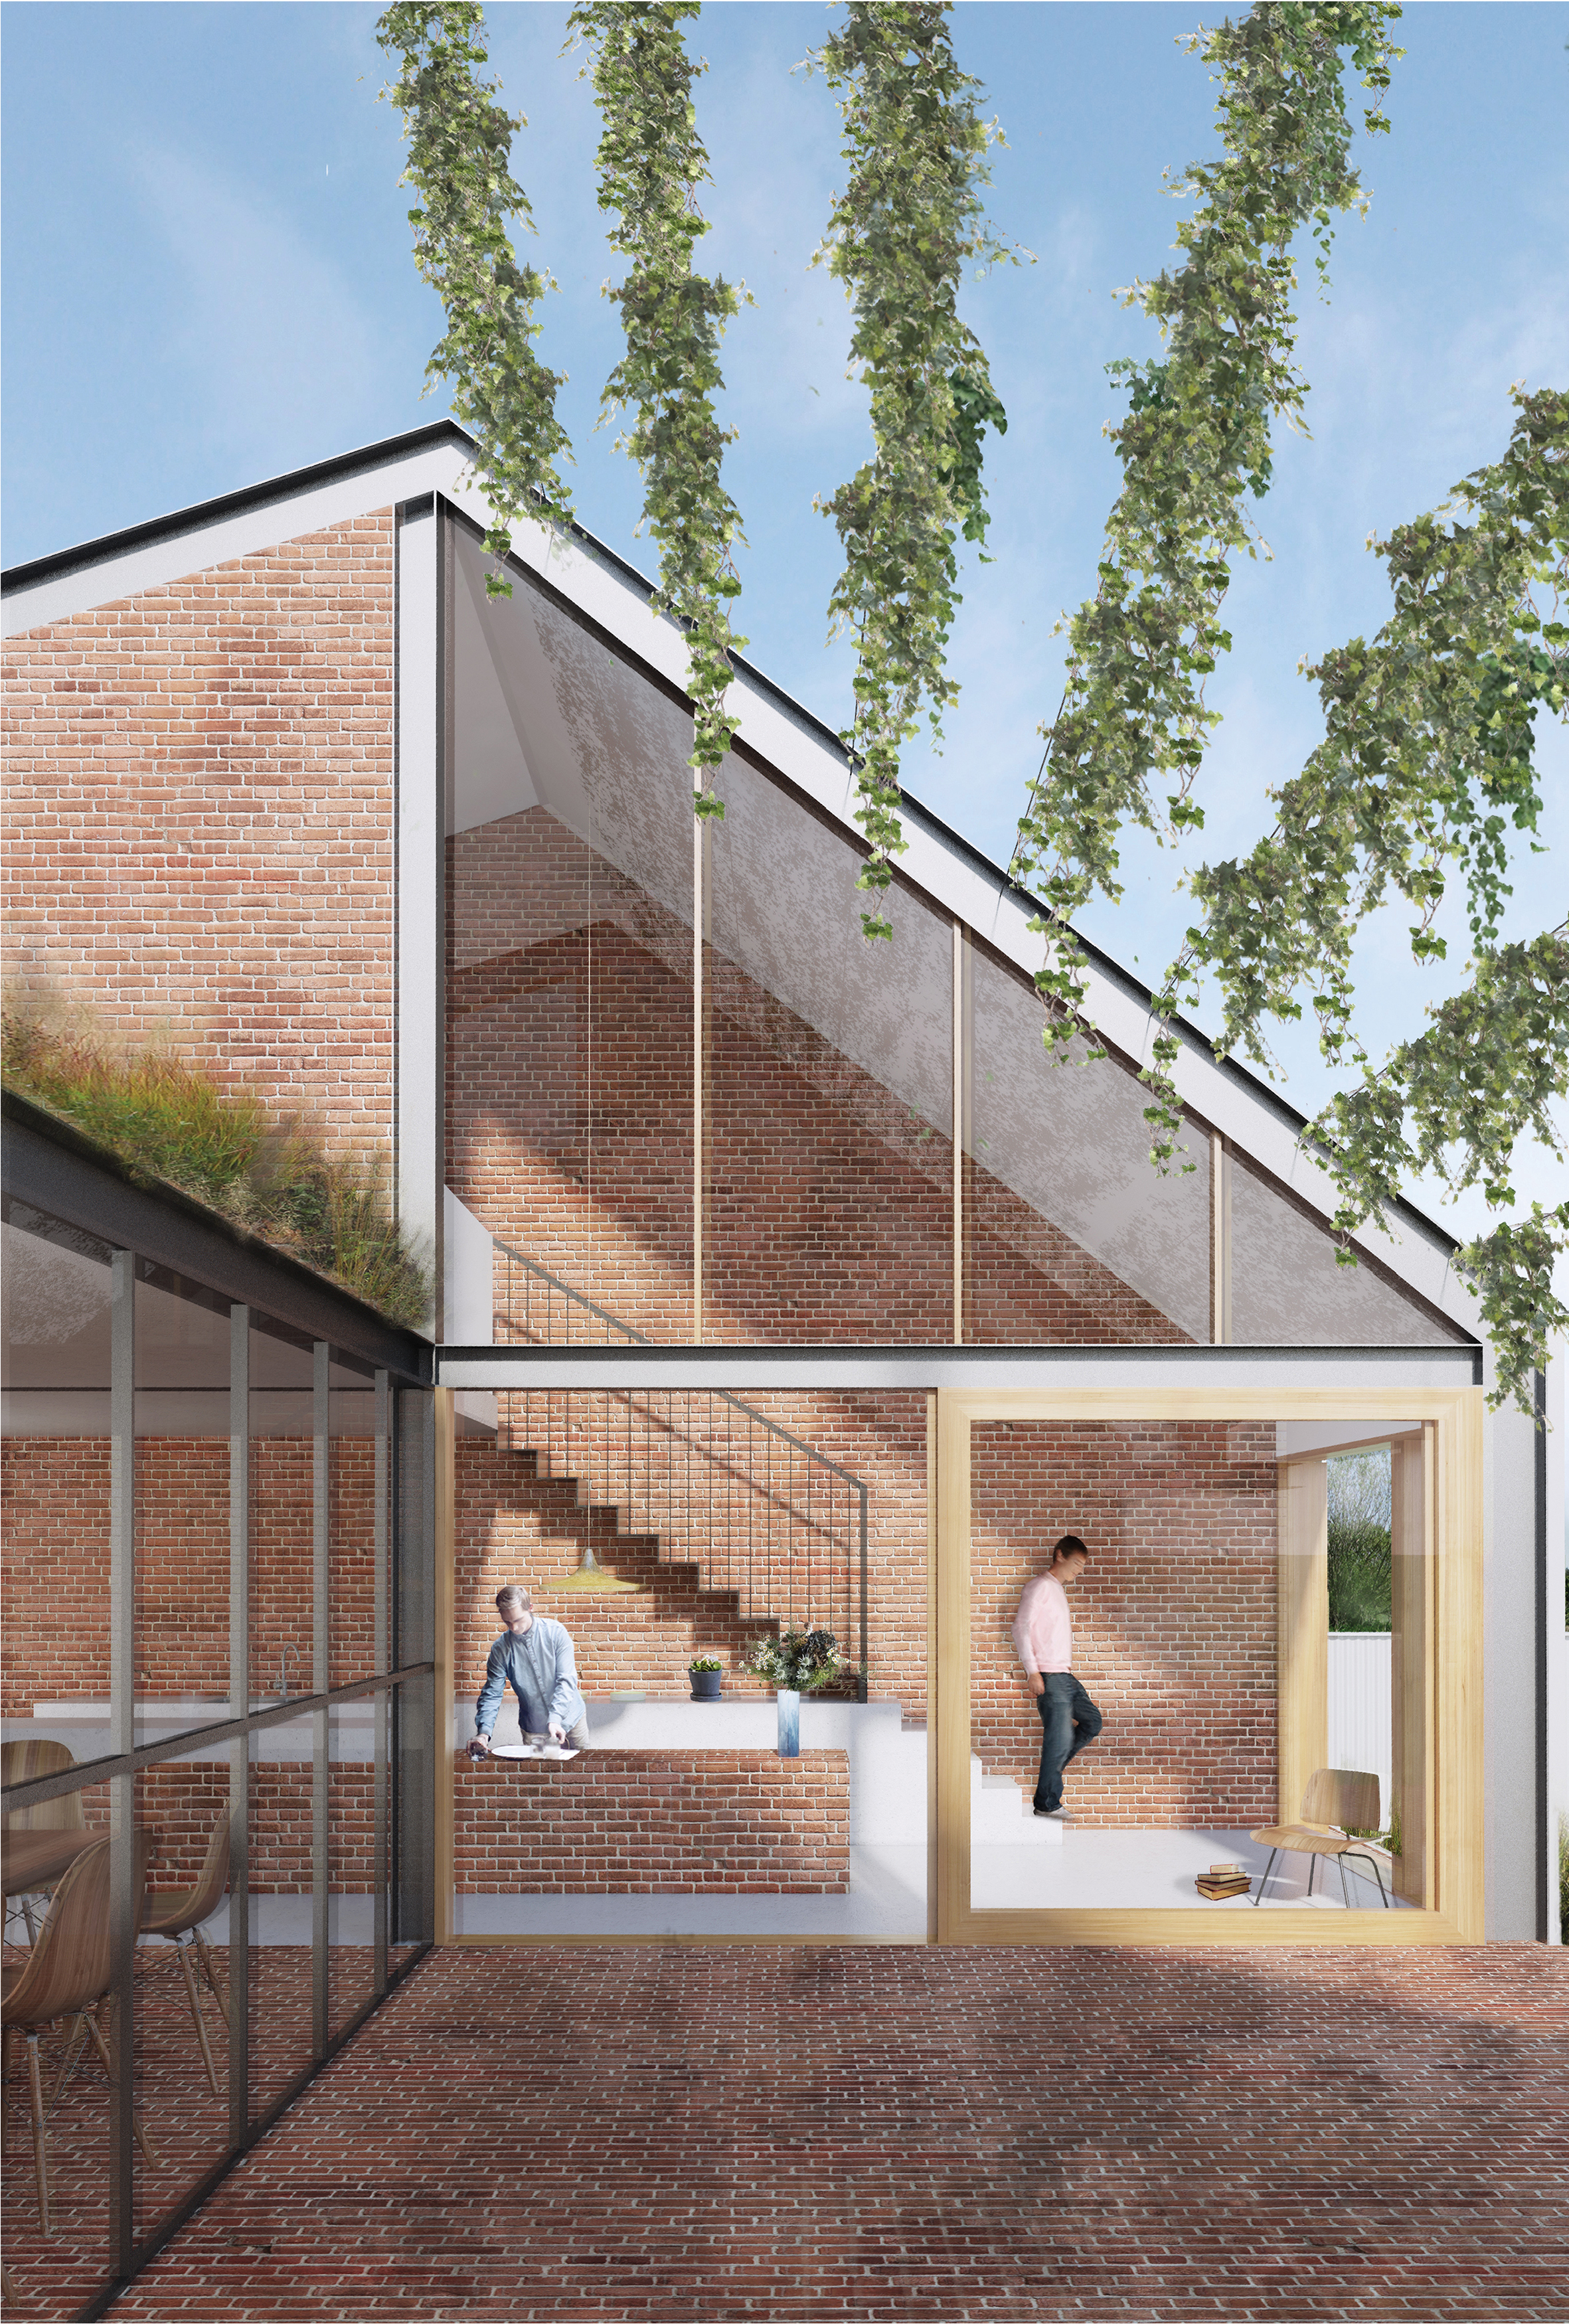 Artist impression of exterior of house.